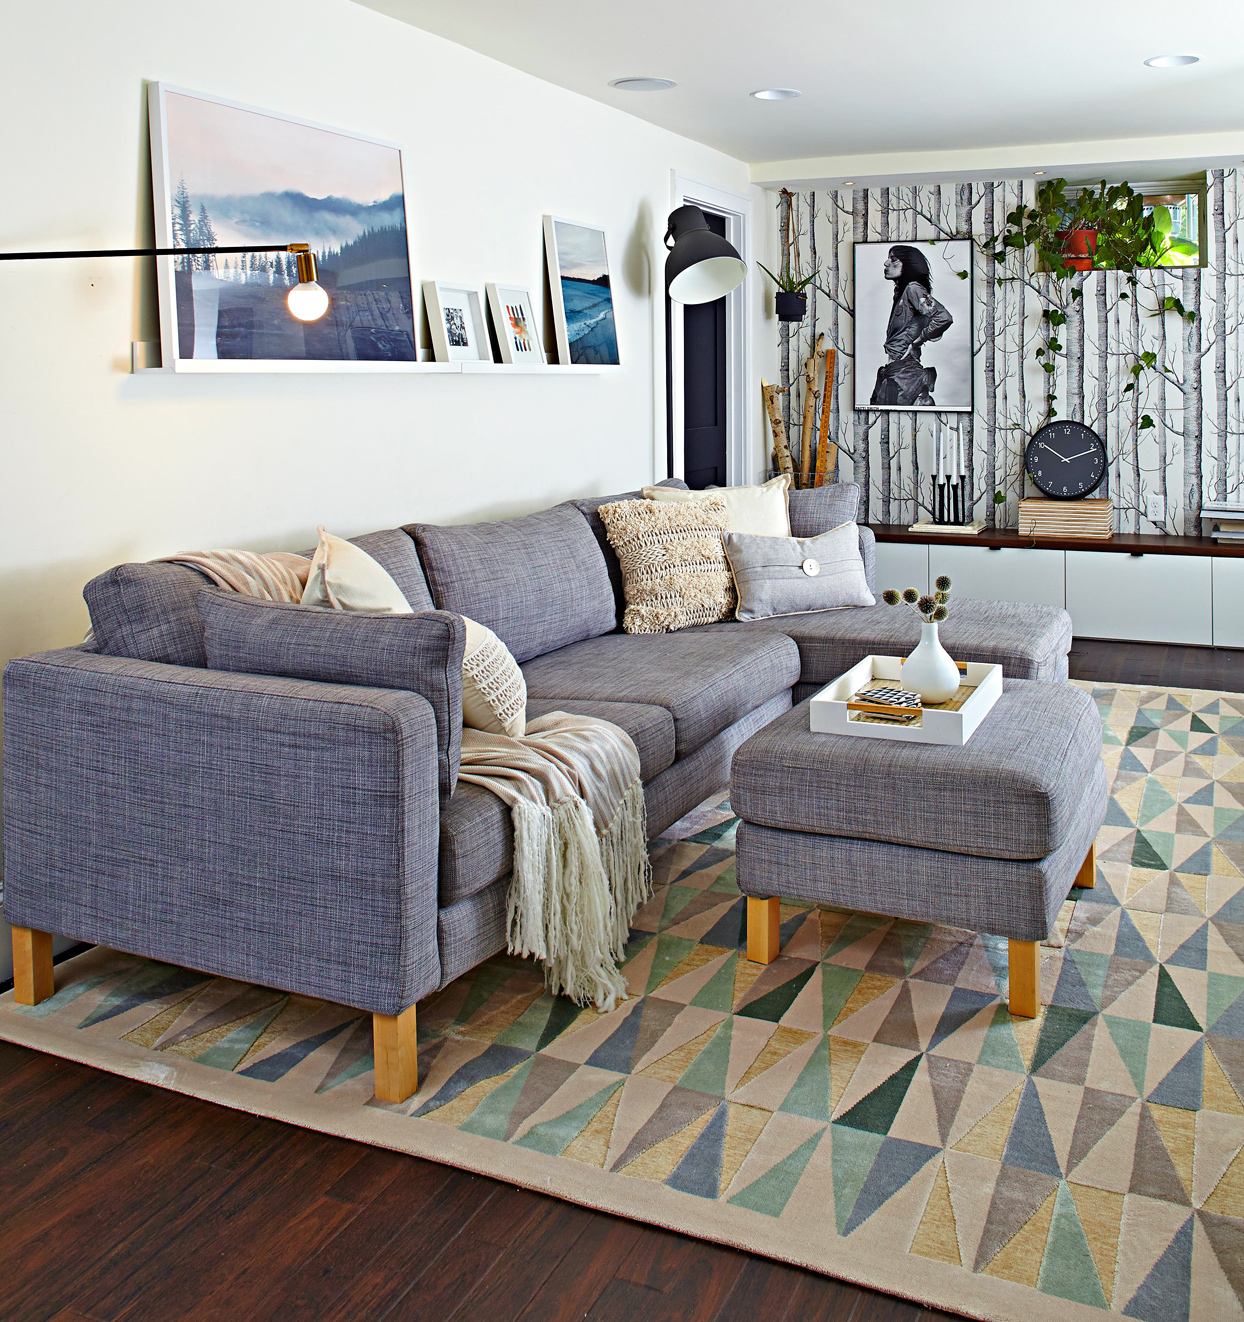 What Goes With A Gray Couch 7 Stylish Solutions Better Homes Gardens